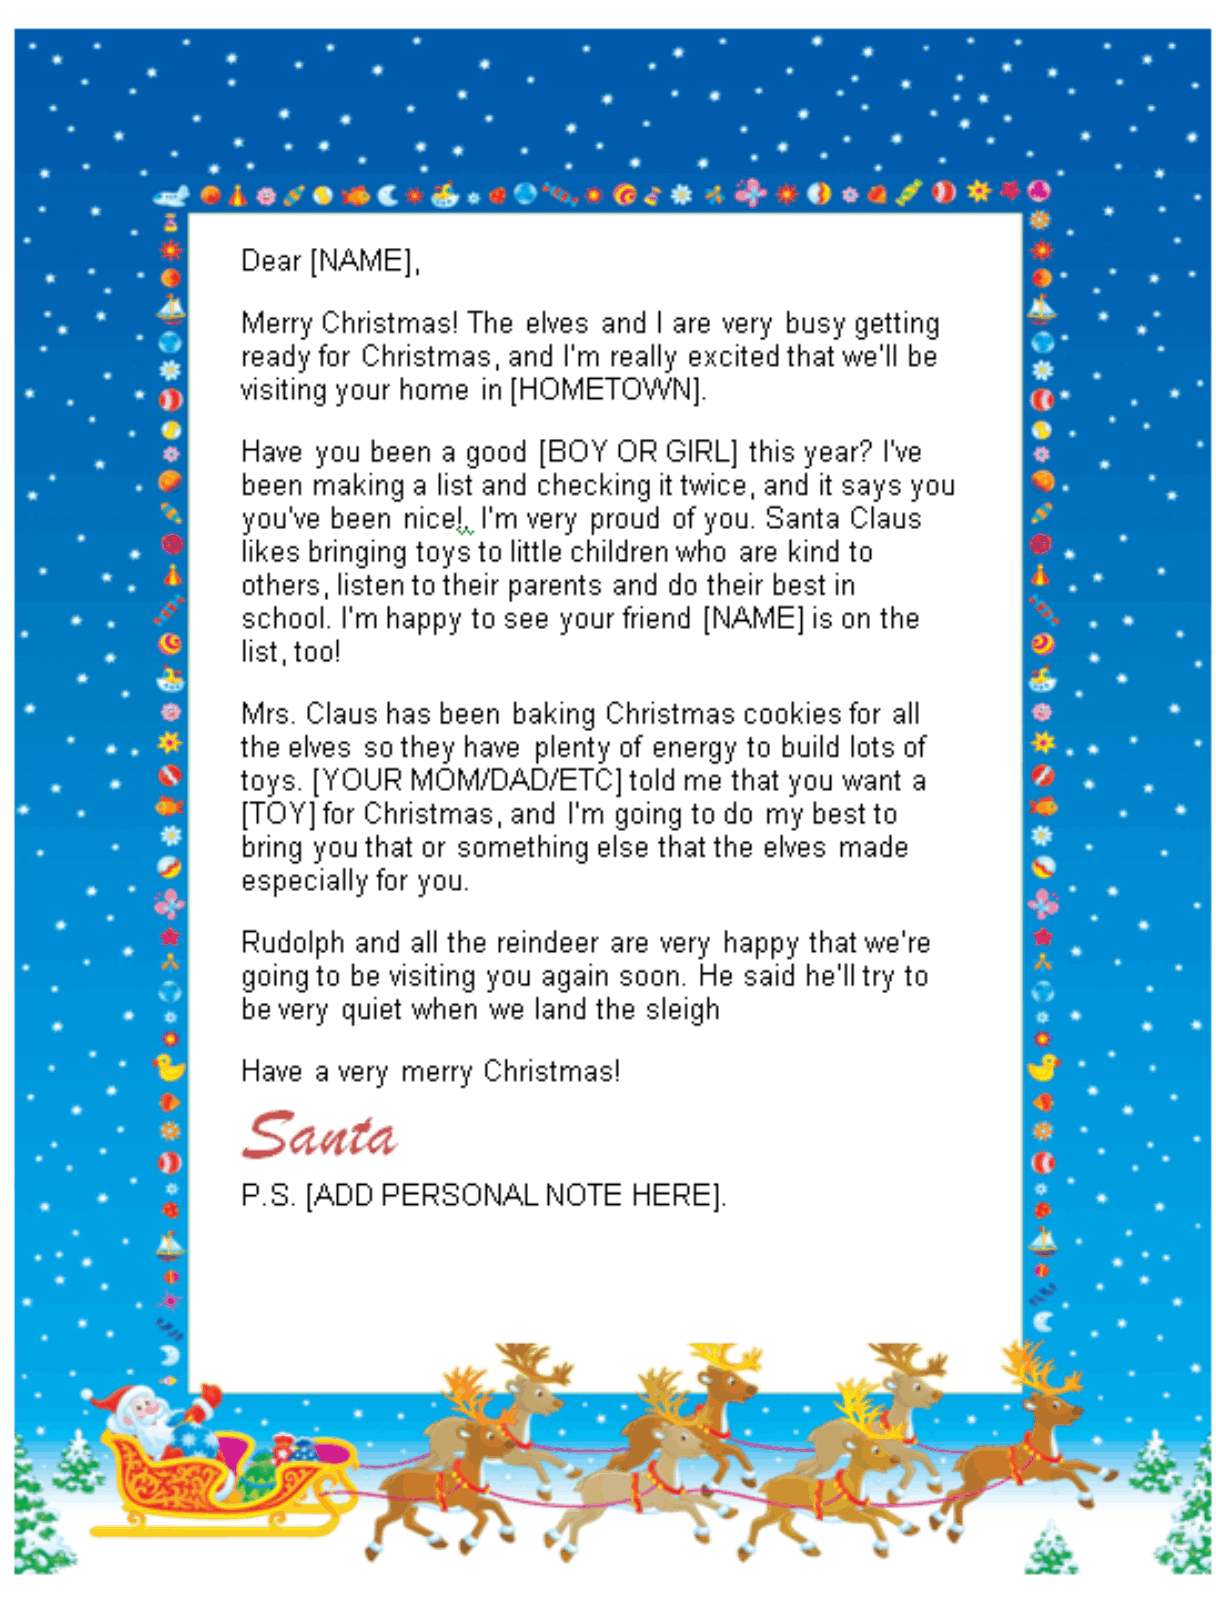 Santa response letter template collection letter templates santa response letter template santa letter template word gallery reference letter template word spiritdancerdesigns Image collections